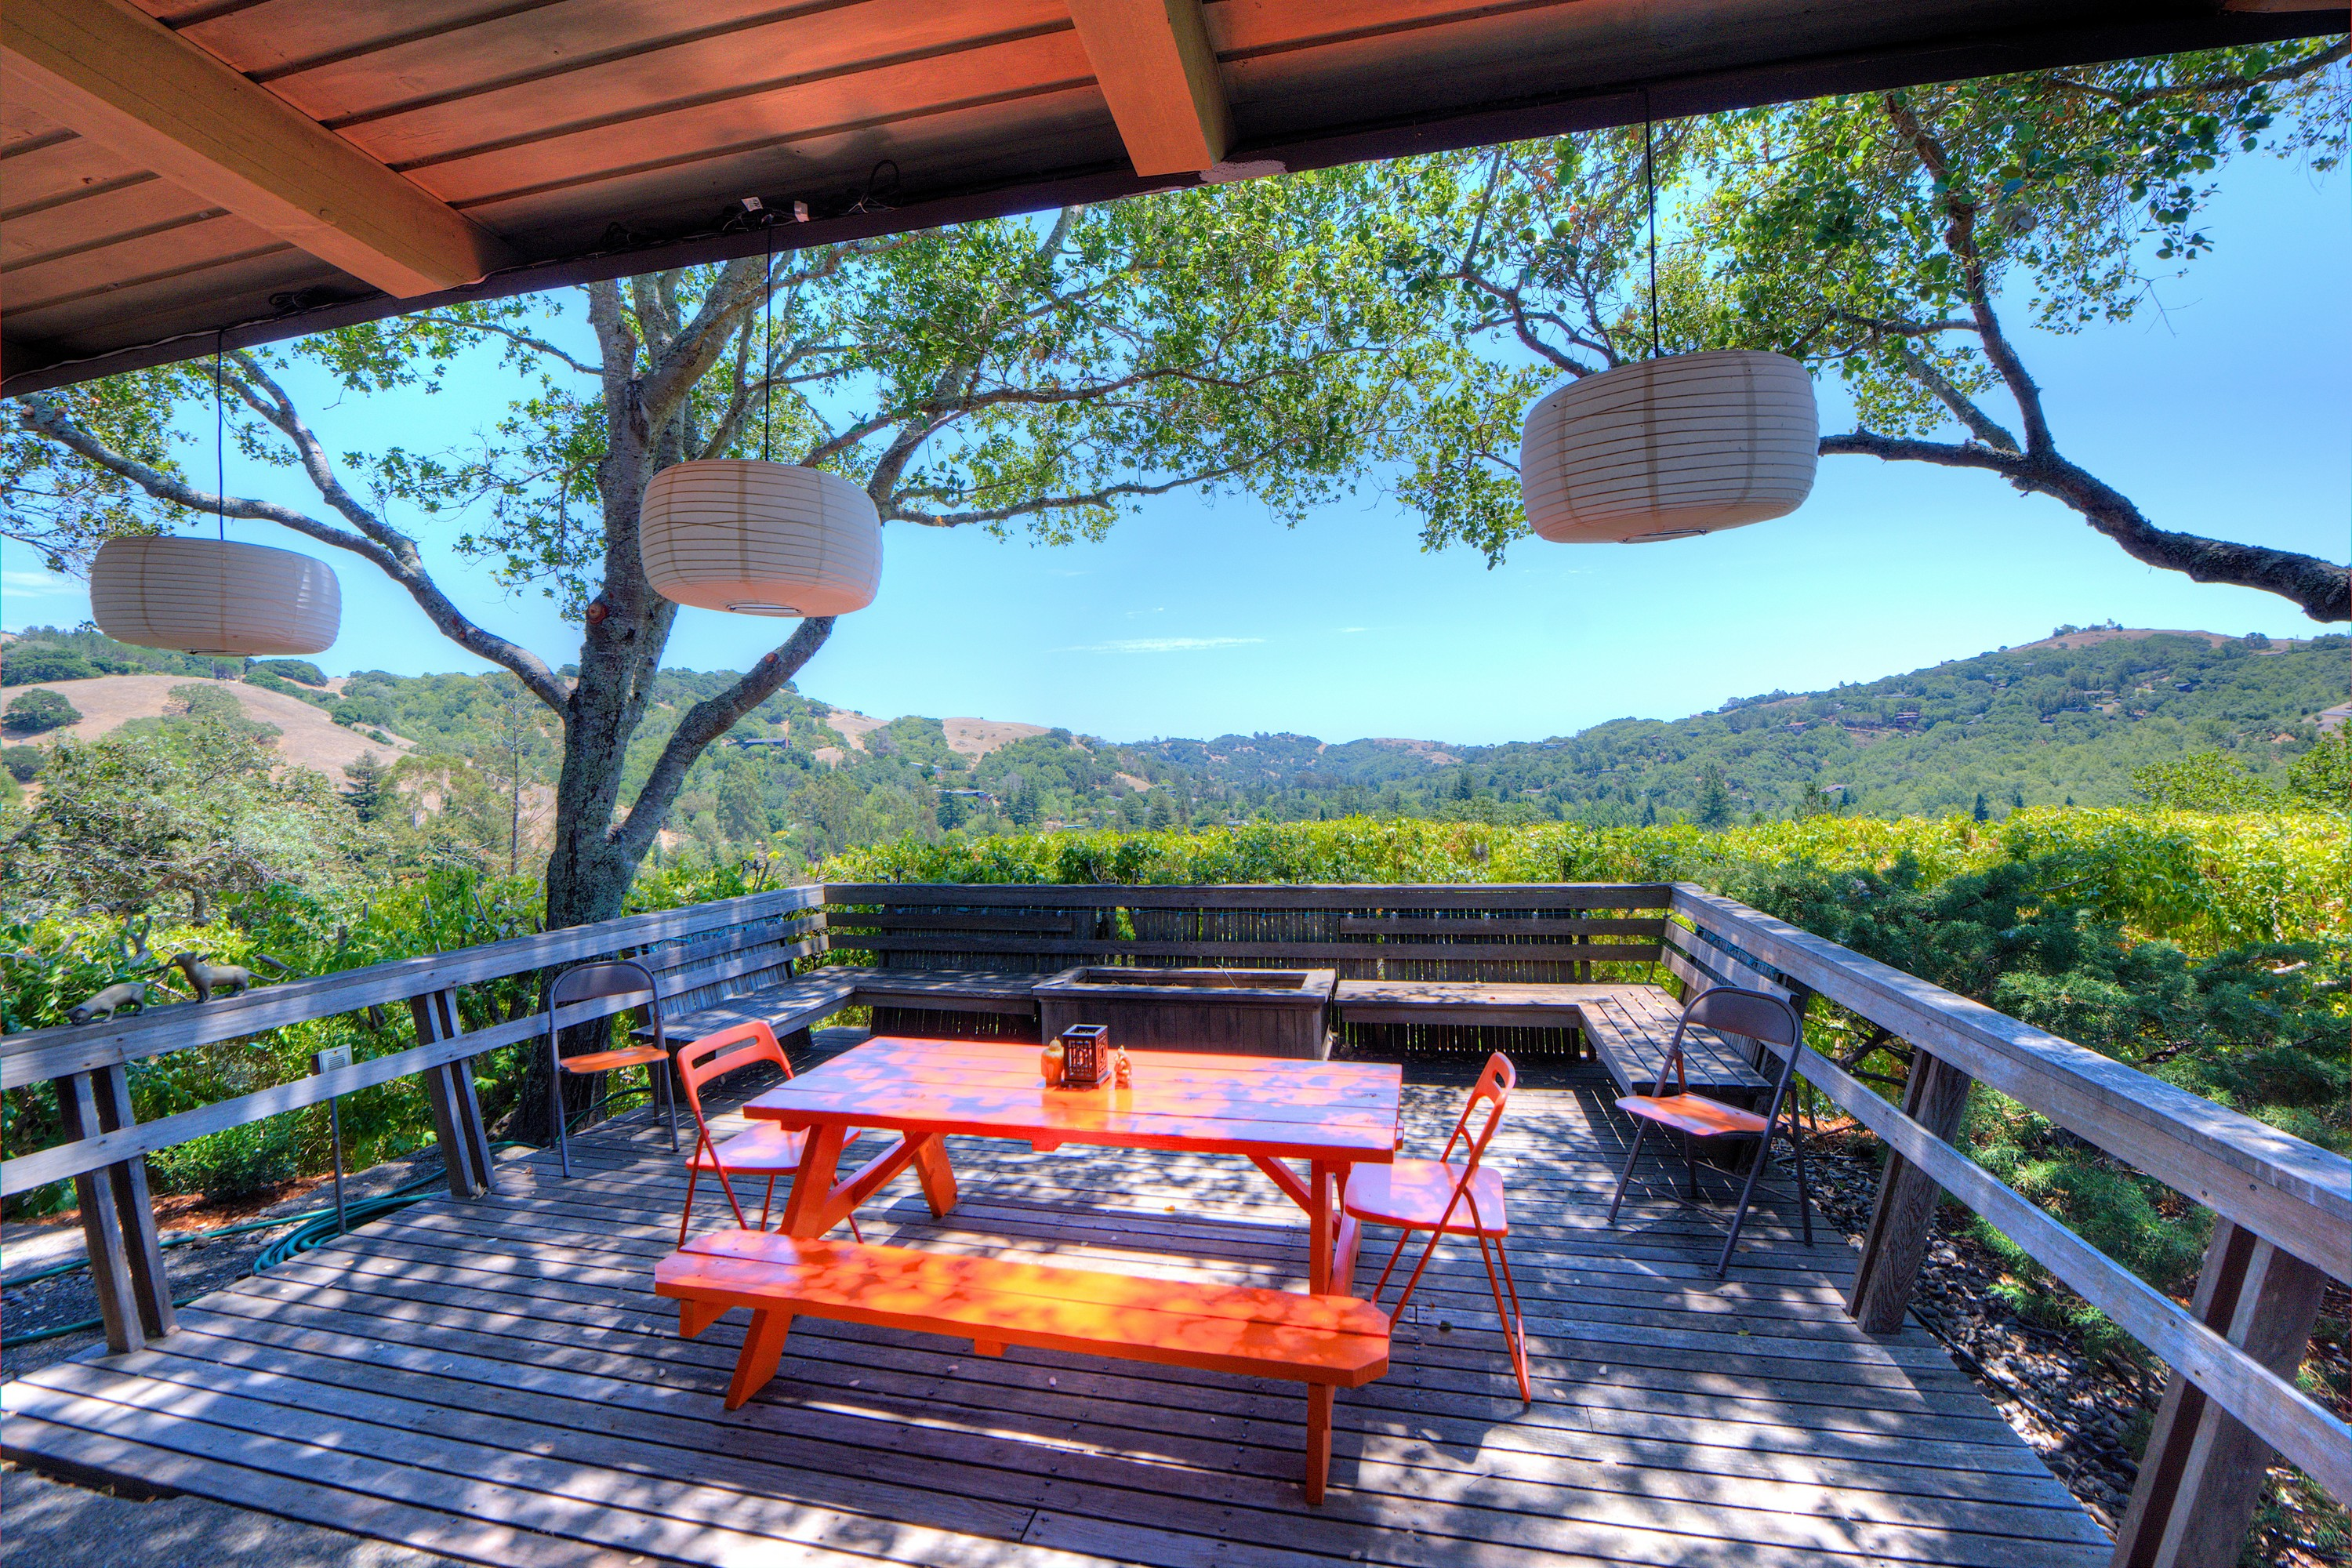 Single Family Home for Sale at Spacious Mid Century Modern on Gorgeous Lot! 140 Crane Drive San Anselmo, California 94960 United States